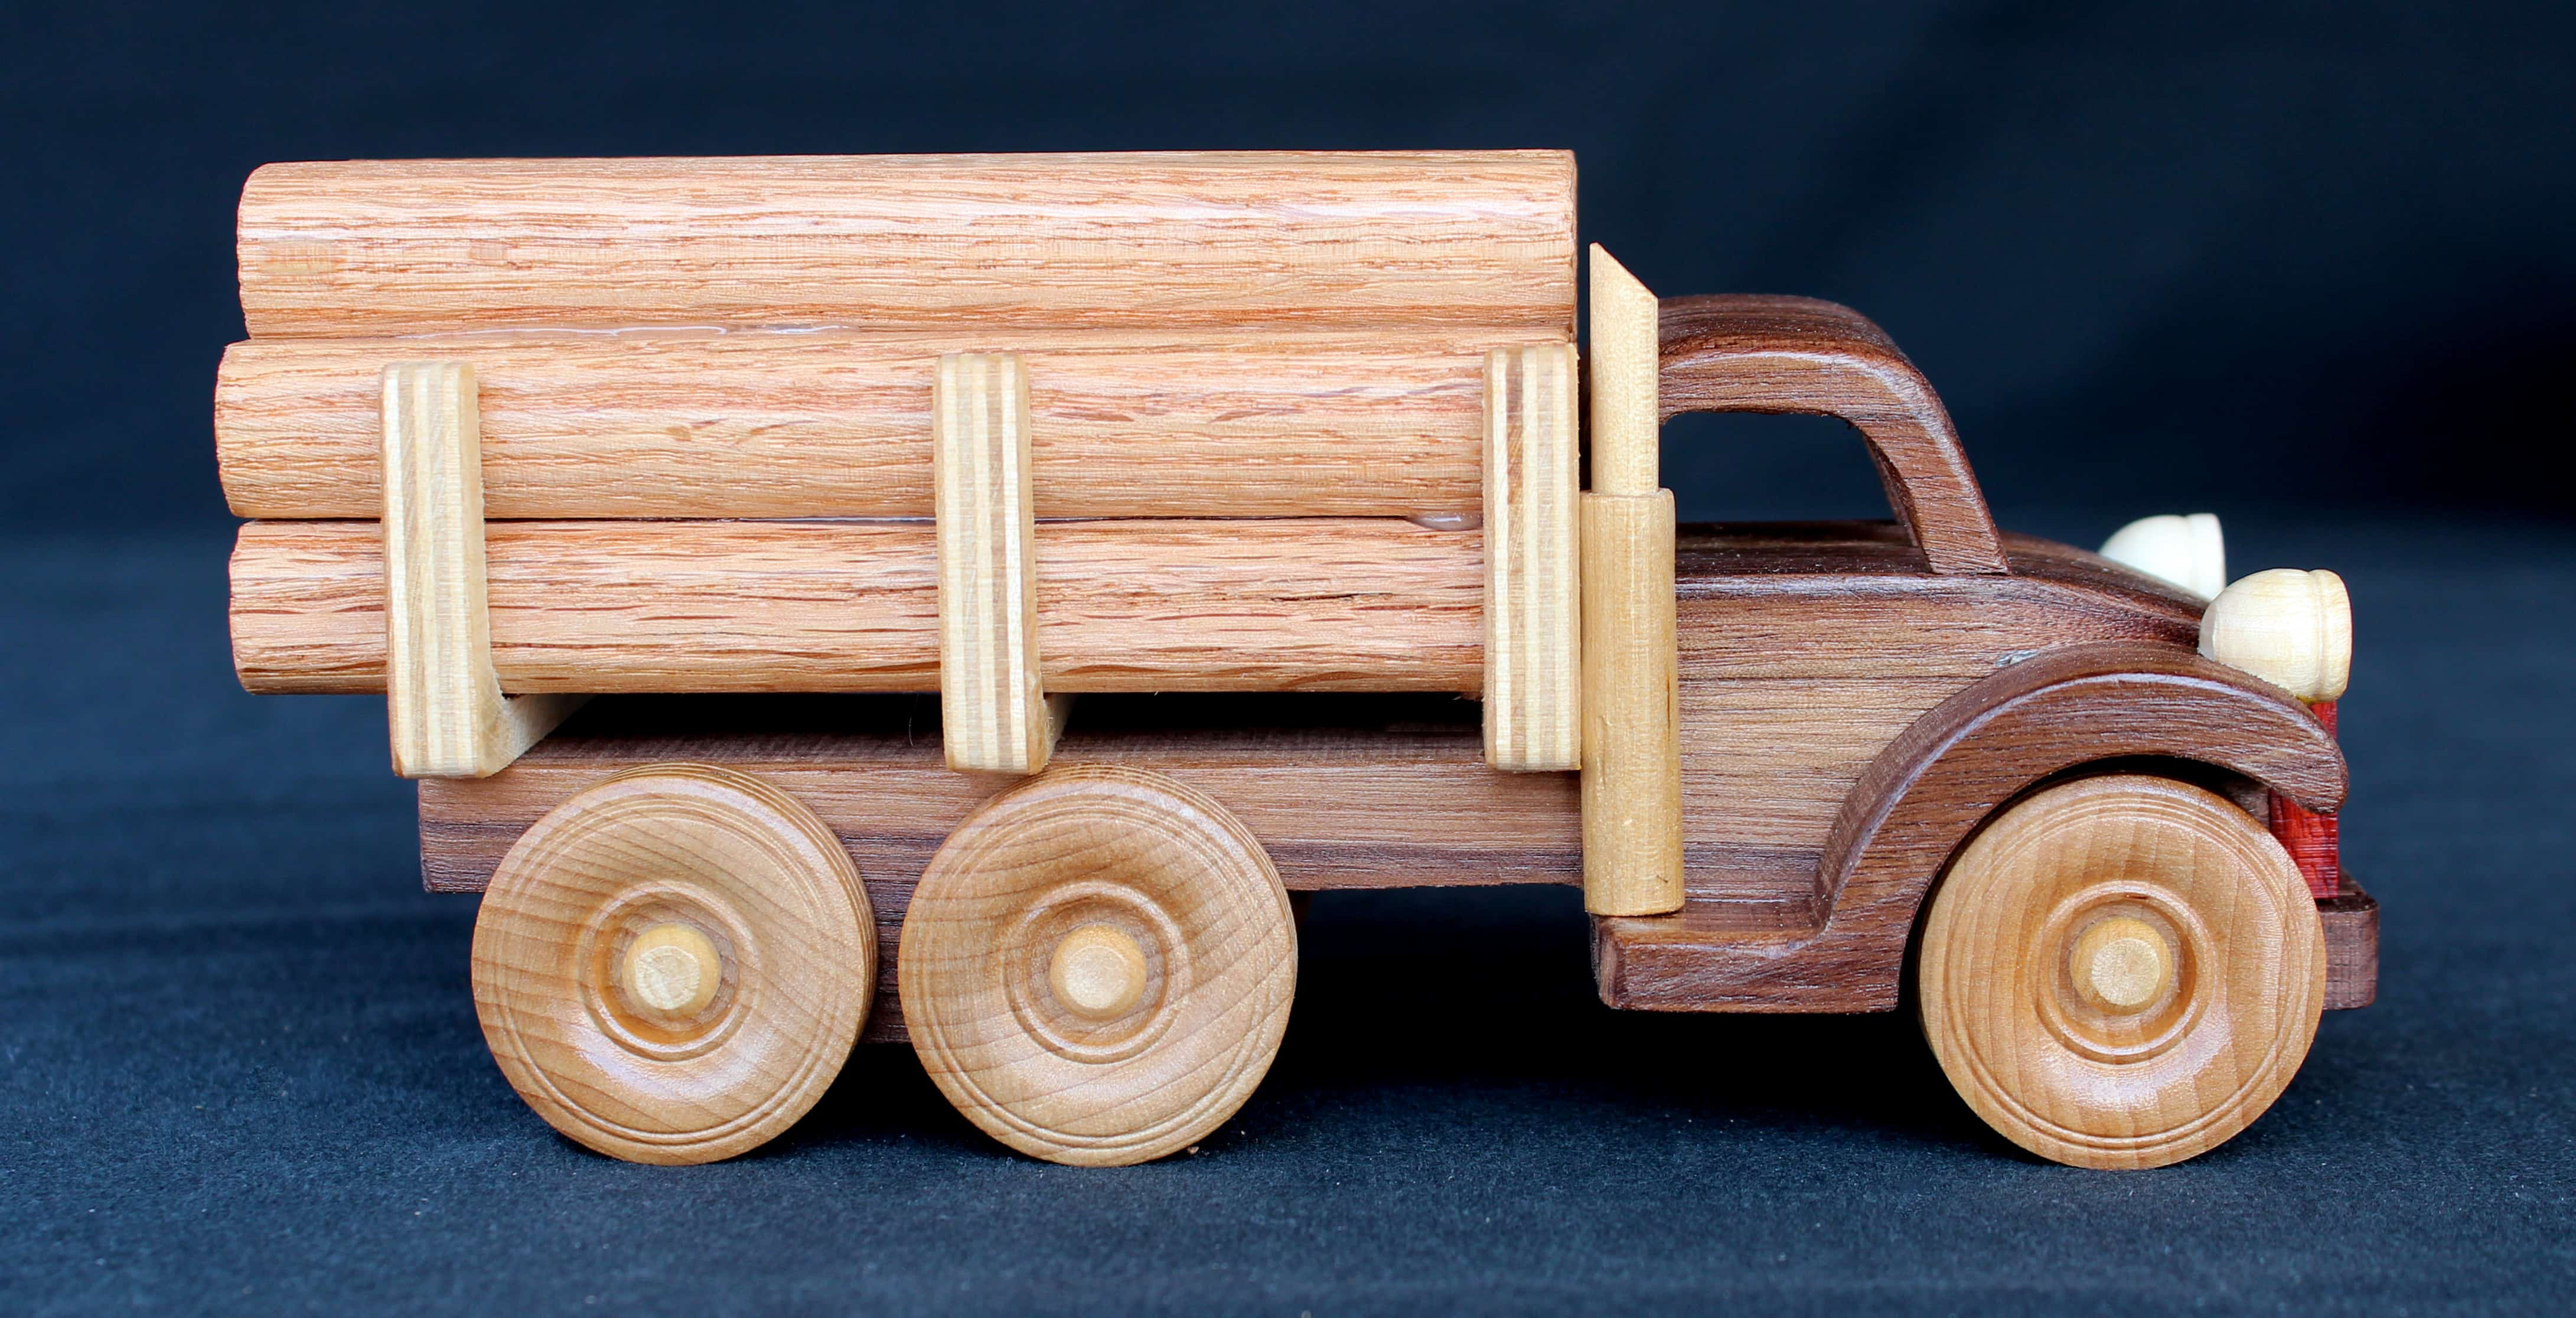 Log Truck woodworking plan from the Plump'N'Tuff set